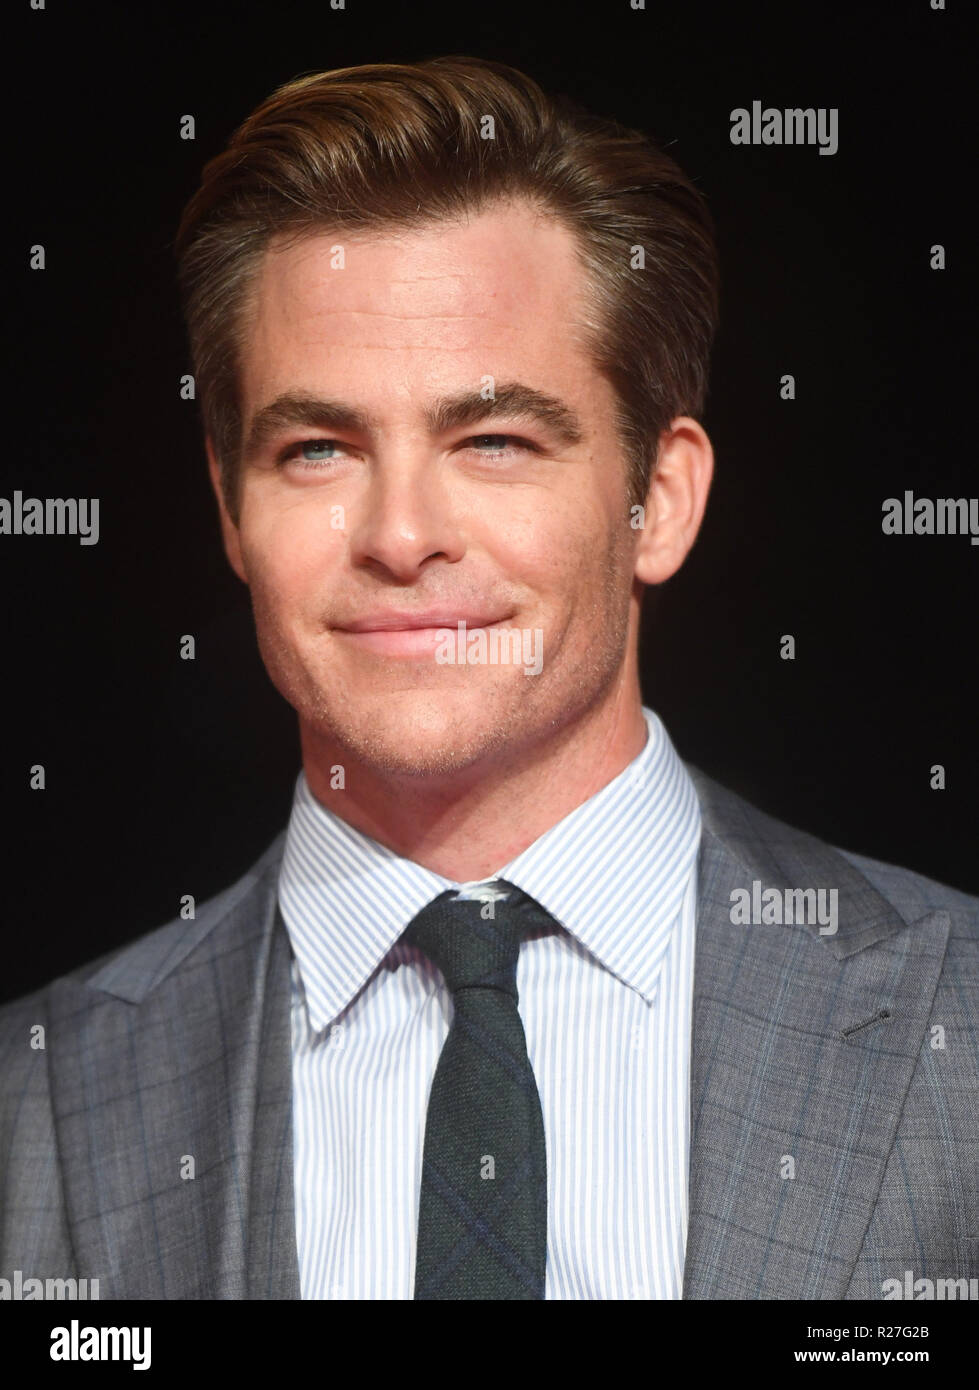 62nd London Film Festival - The Outllaw King - Premiere  Featuring: Chris Pine Where: London, United Kingdom When: 17 Oct 2018 Credit: WENN.com Stock Photo